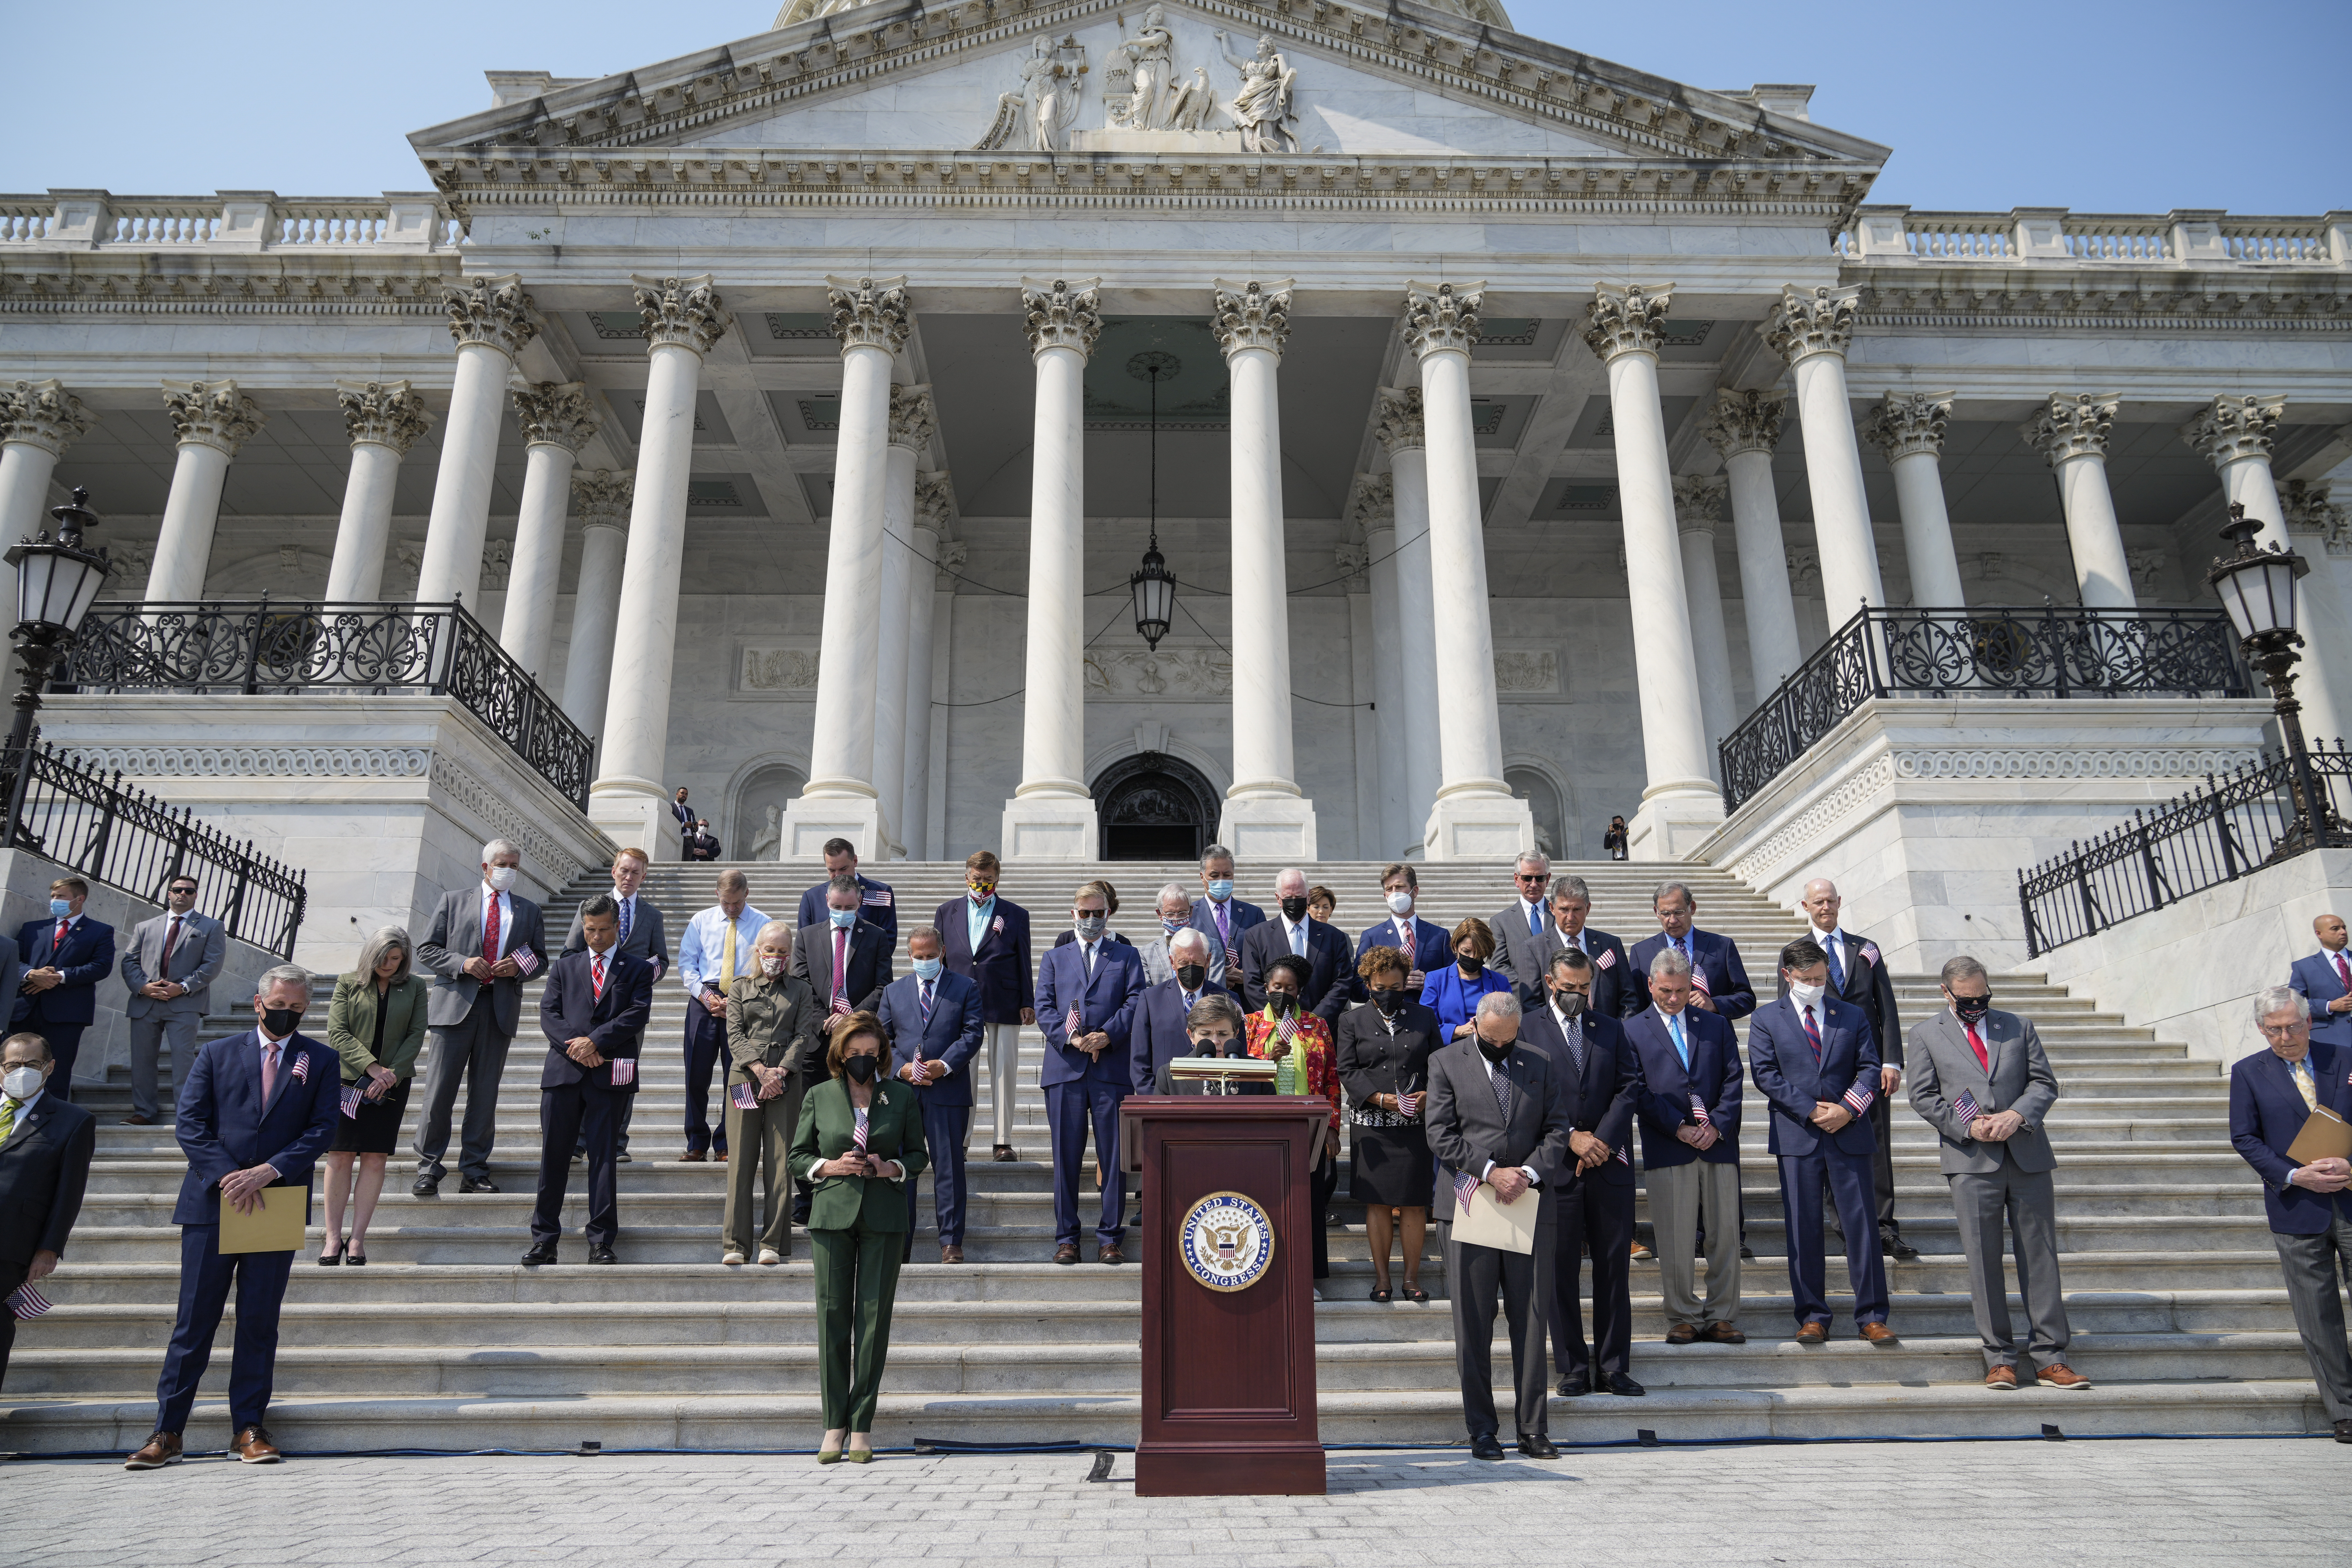 Members of Congress attend a remembrance ceremony marking the 20th anniversary of the 9/11 terror attacks on the steps of the U.S. Capitol, on September 13, 2021 in Washington, D.C. (Photo by Drew Angerer/Getty Images)